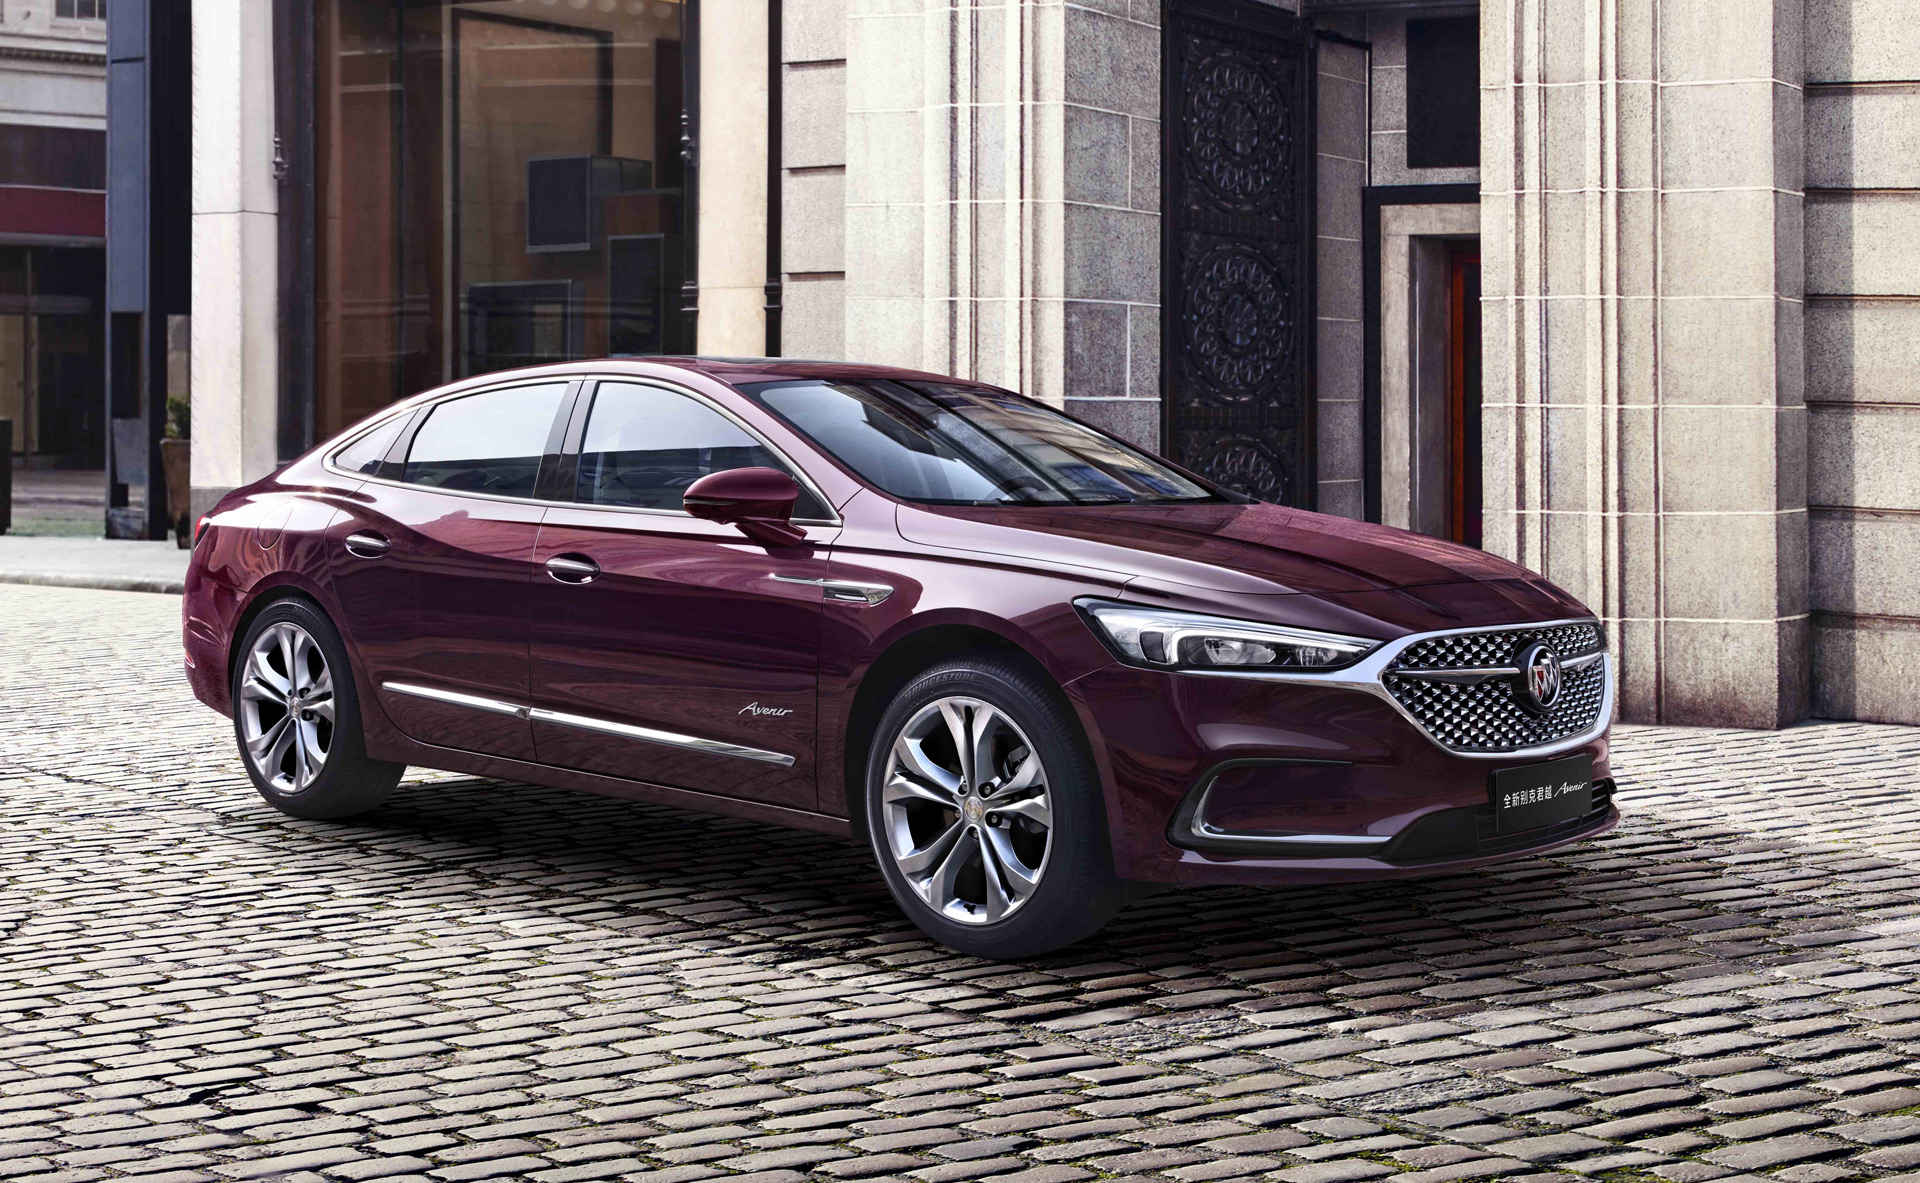 2020 Buick Lacrosse Made Handsome Just As It's Dropped In Us Is There A 2021 Buick Lacrosse